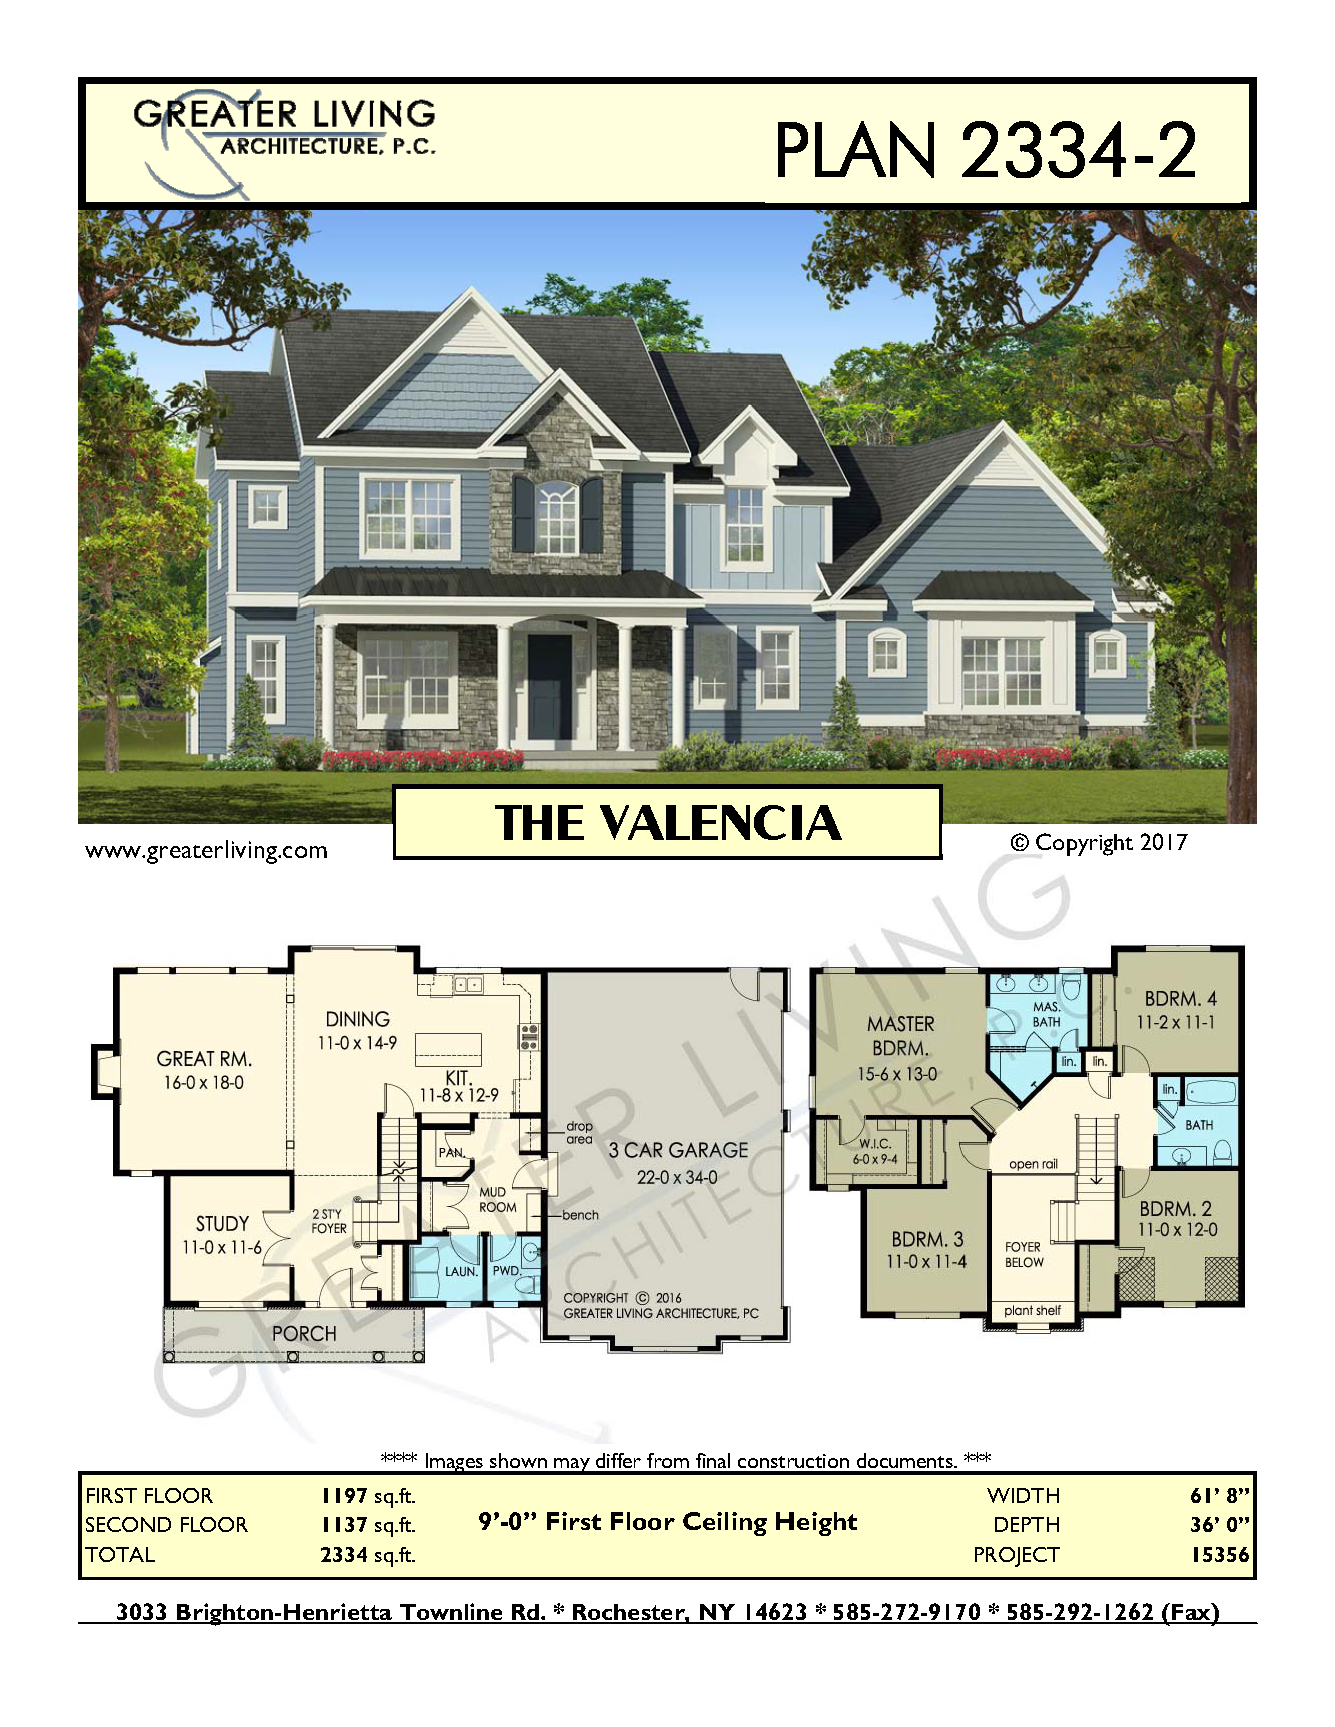 Plan 2334 2 the valencia two story house plan greater living architecture residential architecture